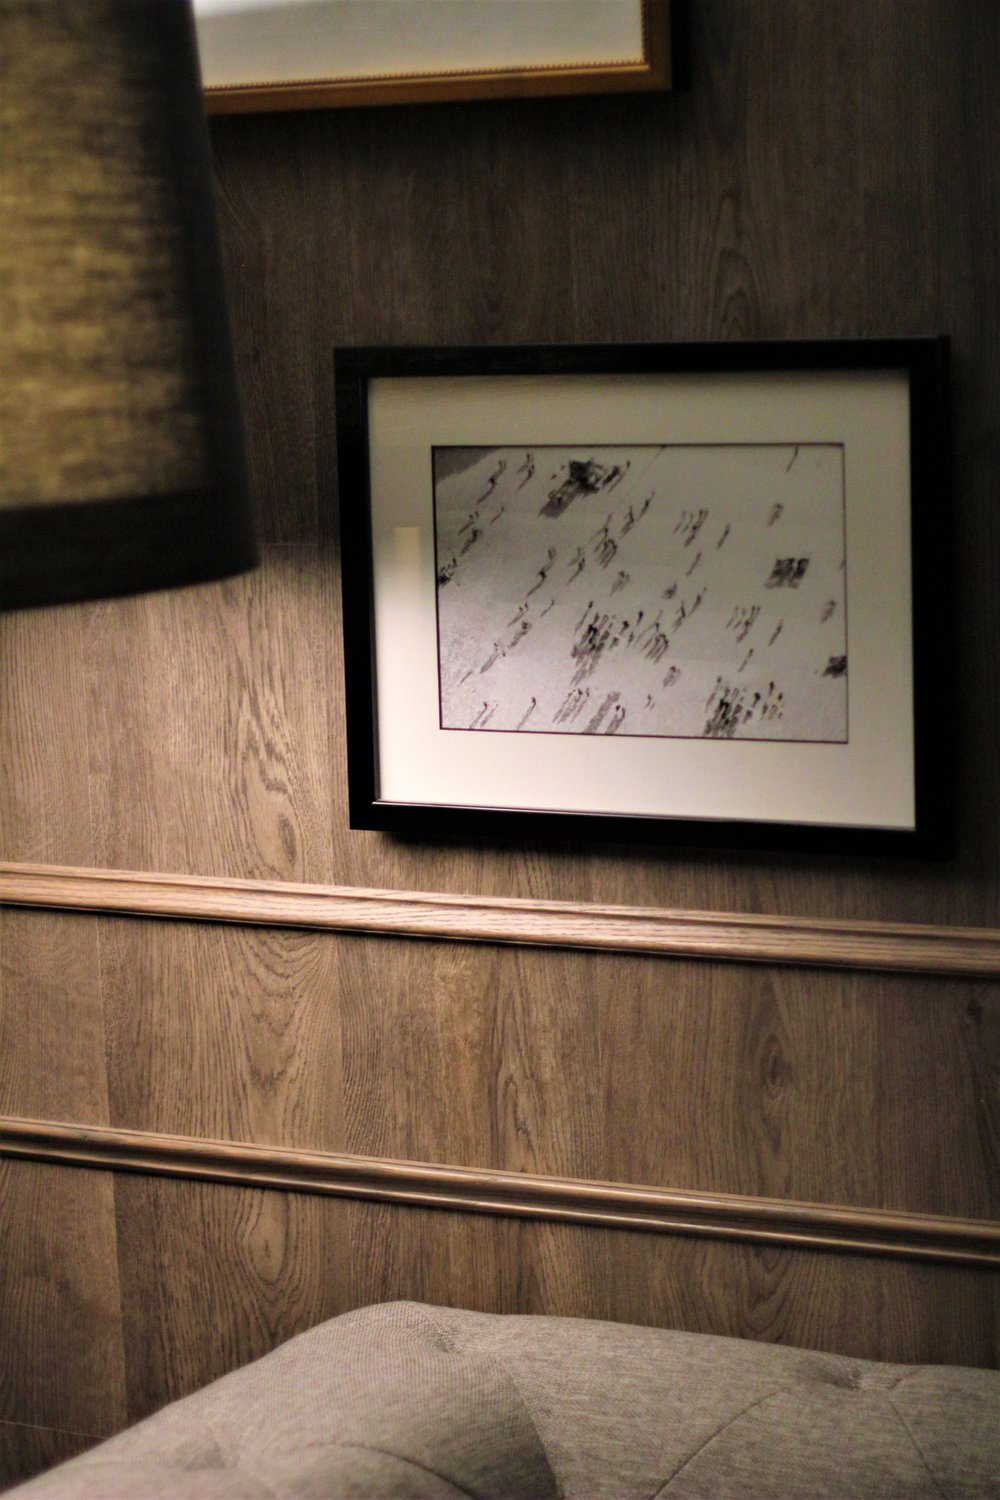 The littlest details - Kimpton's Mason and Rook hotel in Washington DC